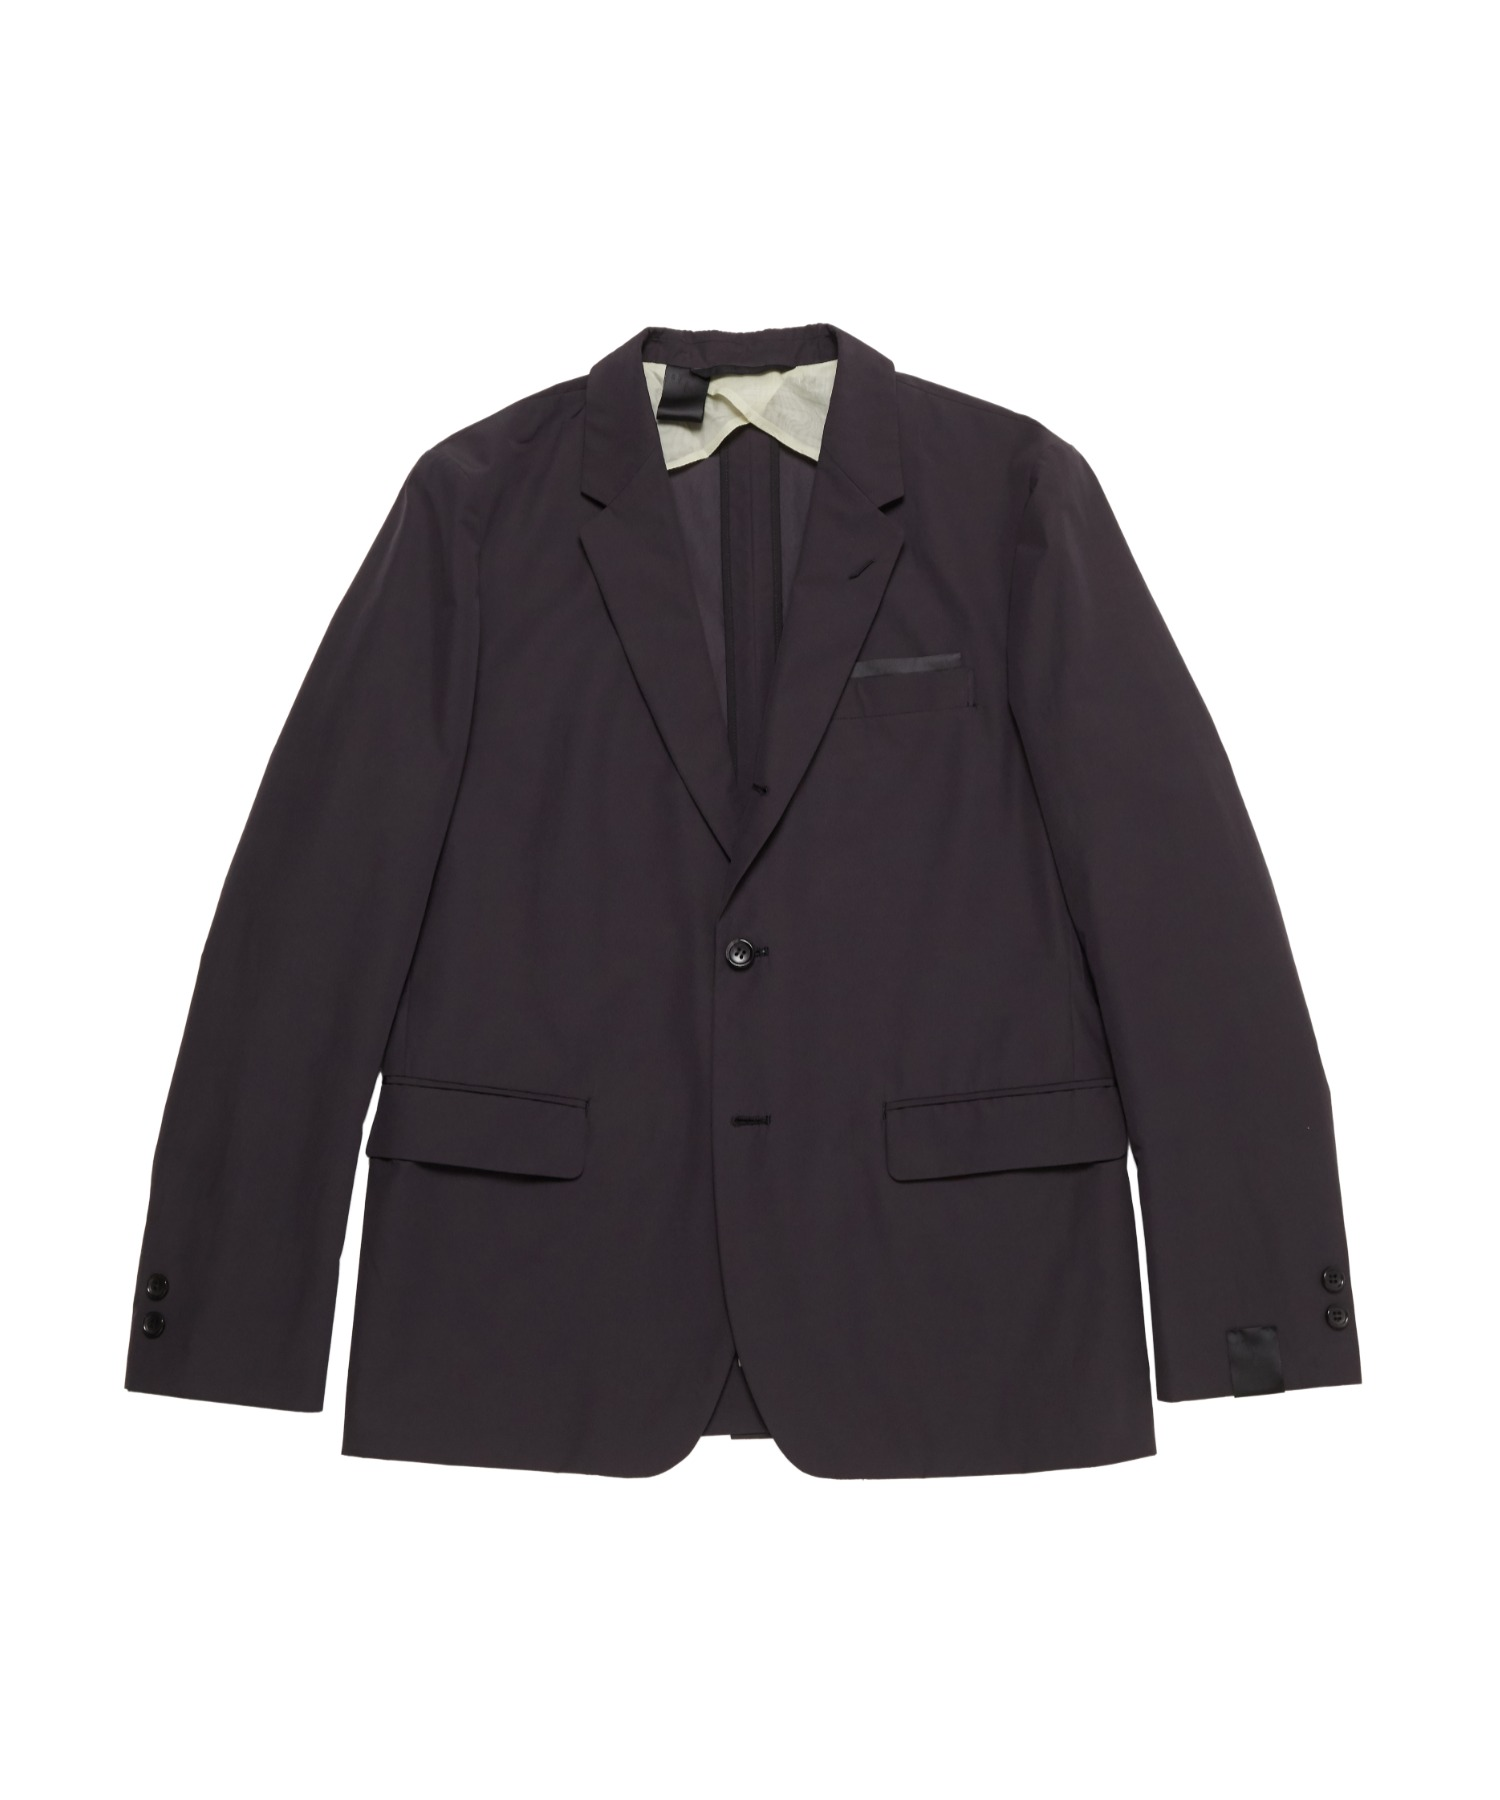 2021SPRING TAILORED JACKET